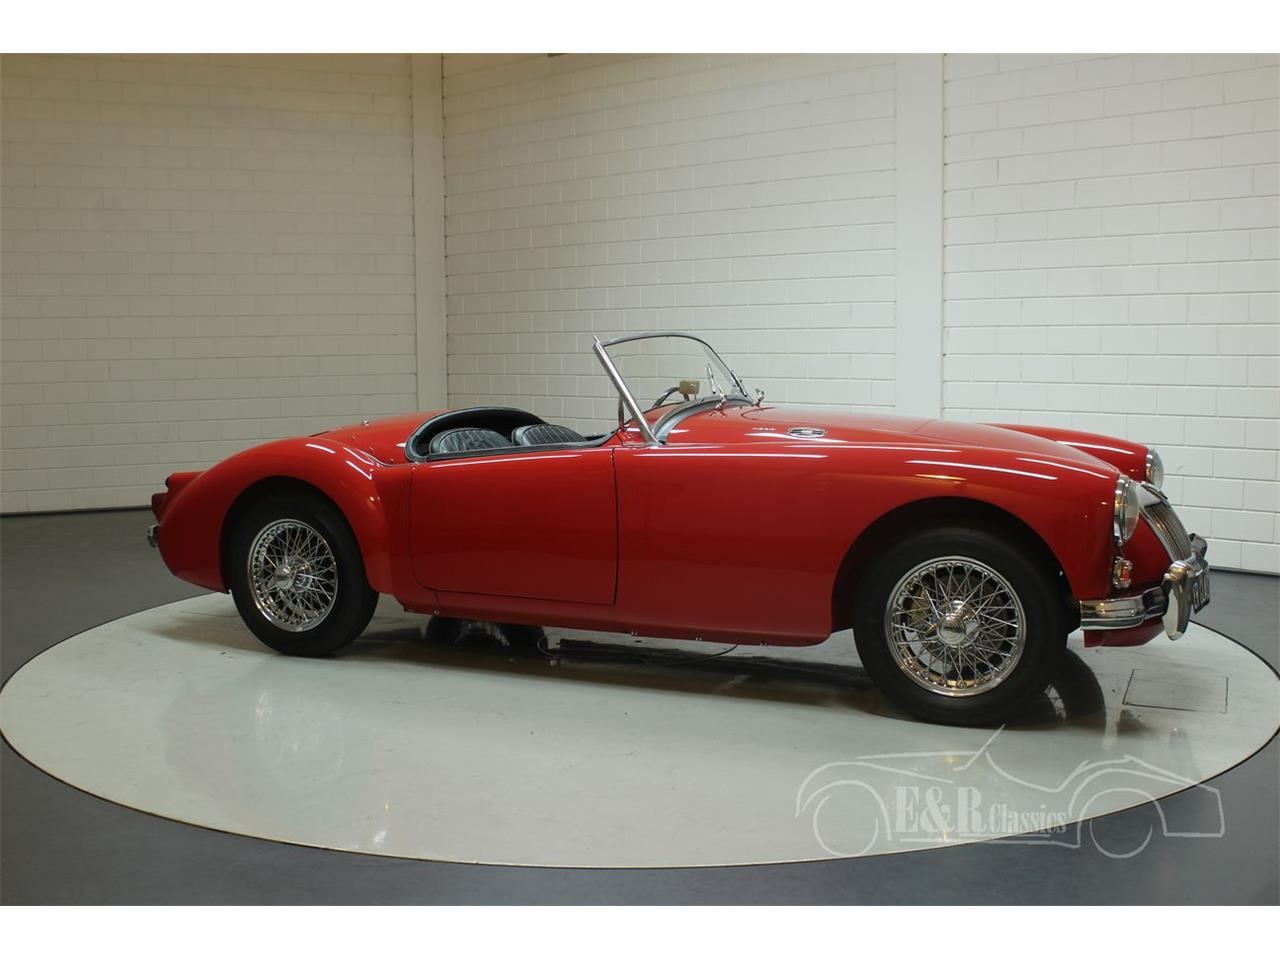 Large Picture of '59 MGA located in Waalwijk - Keine Angabe - - $56,500.00 Offered by E & R Classics - PGST